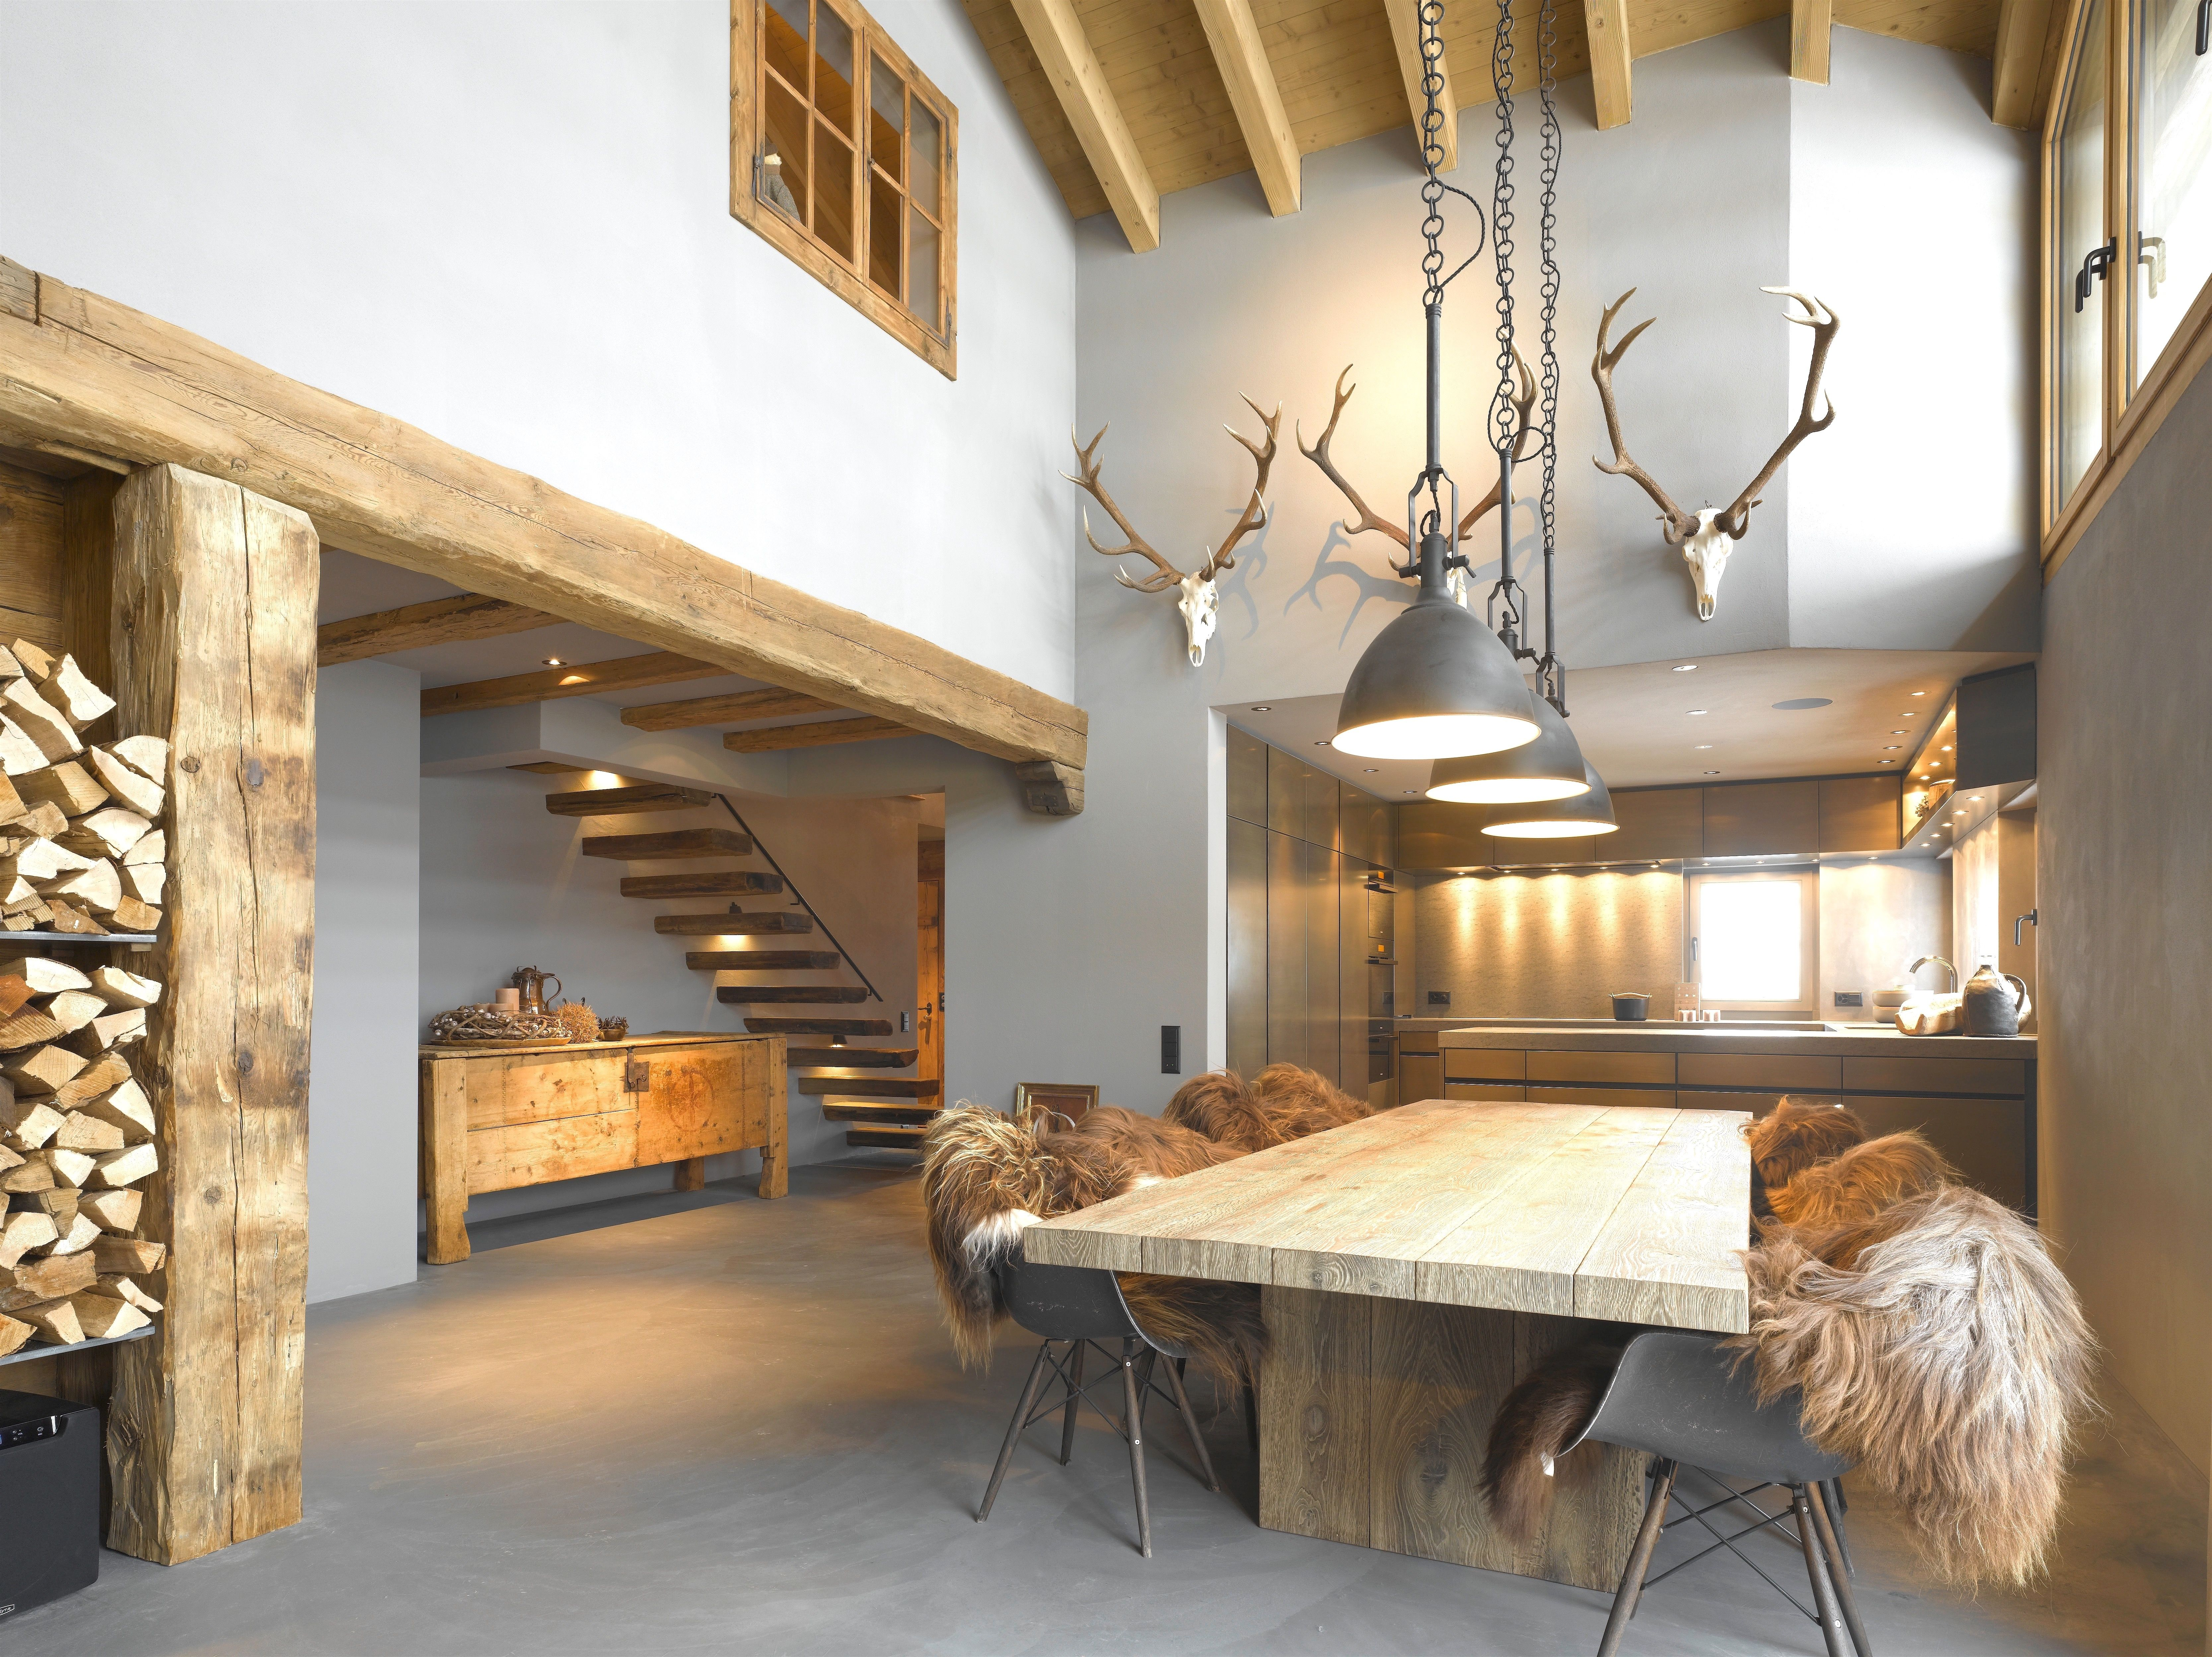 Deko Ideen Mit Holz 40 Deko Ideen Holz Decoration Home Decor Chalet Interior